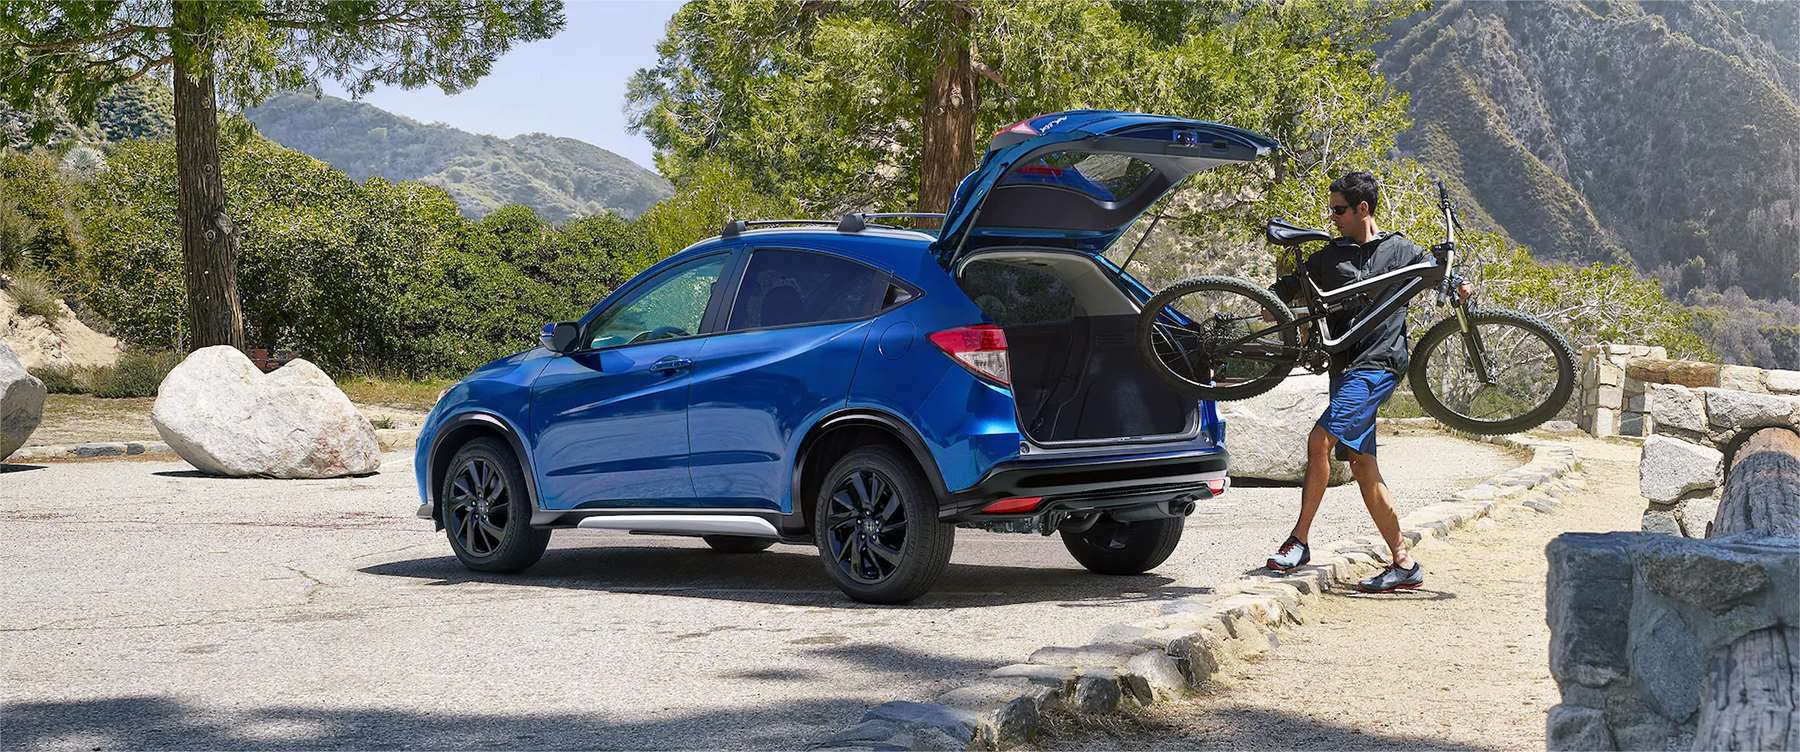 2021 Honda HR-V Introduction Slider